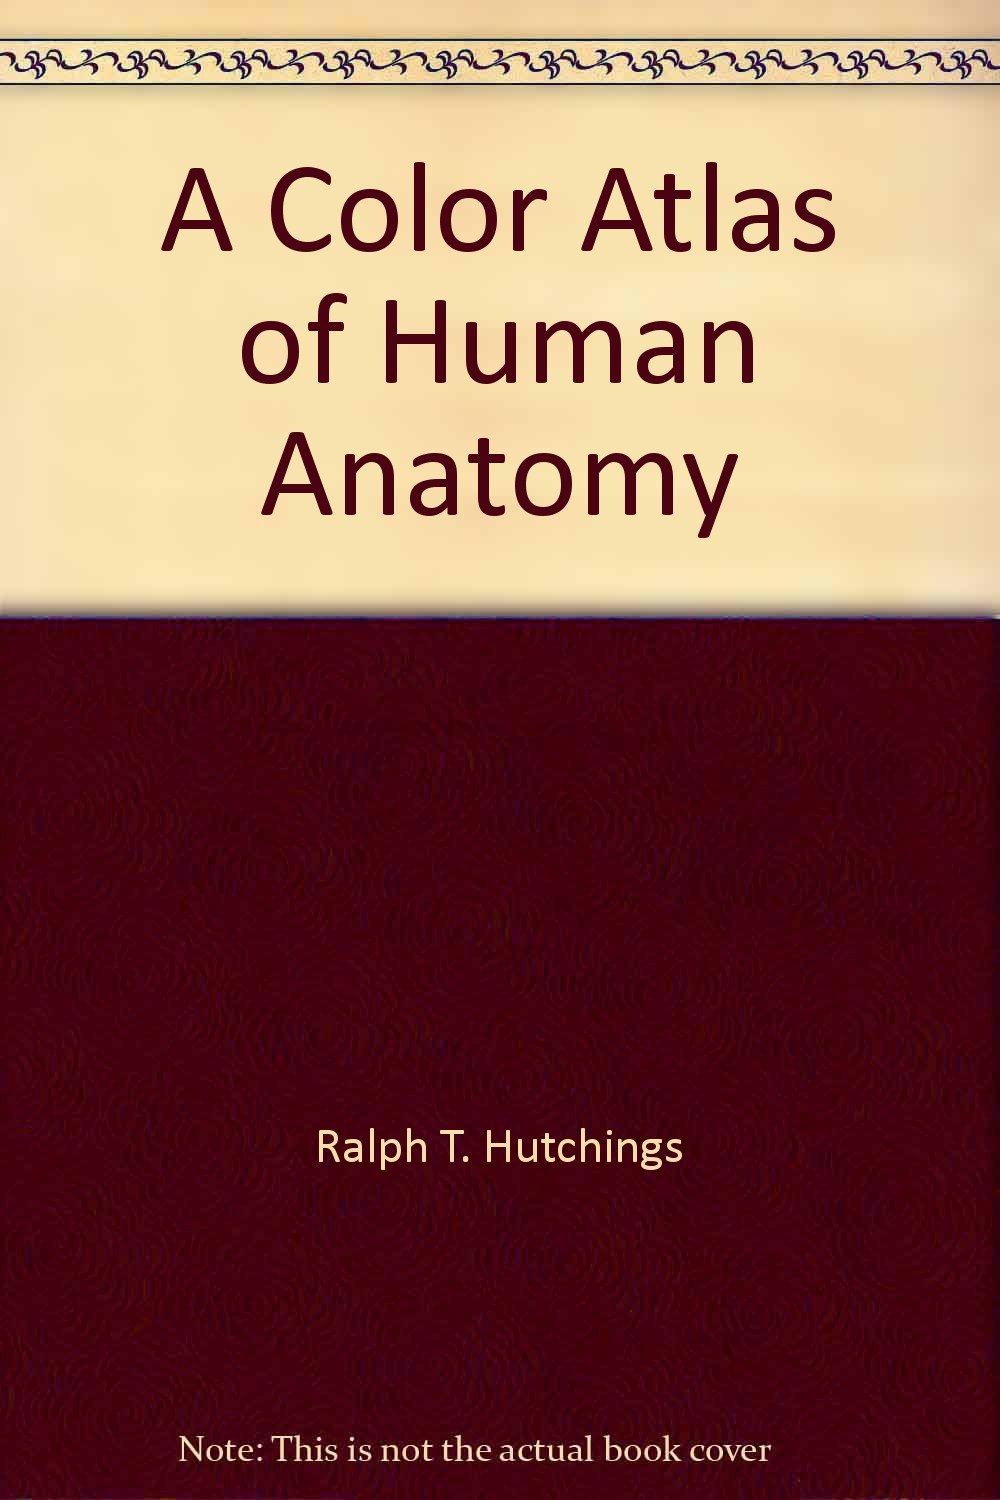 A Color Atlas Of Human Anatomy R M H Mcminn 9780815158547